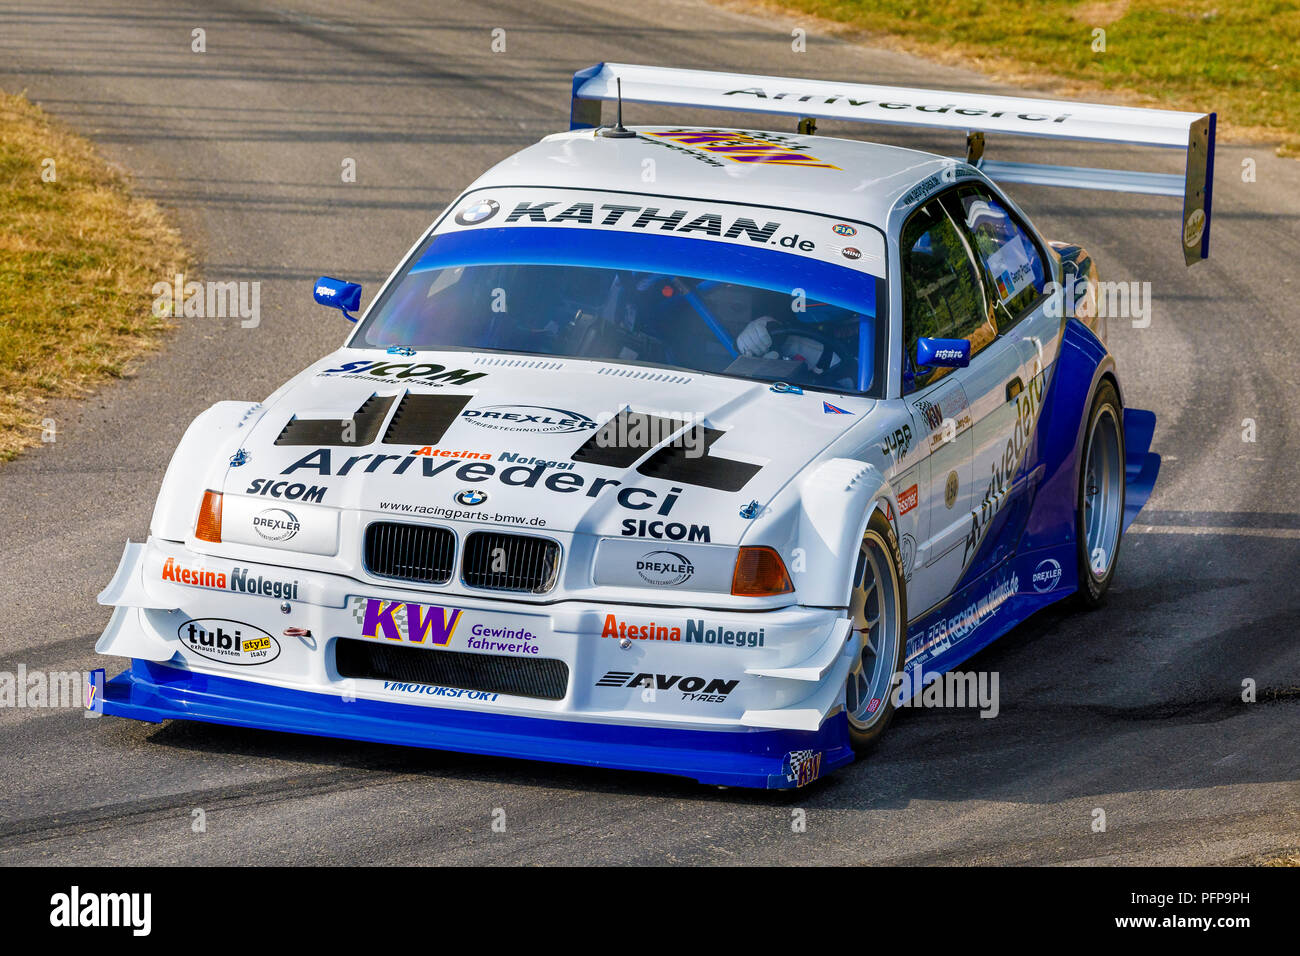 hight resolution of 1991 bmw e36 v8 judd pikes peak entrant with driver joerg weidinger at the 2018 goodwood